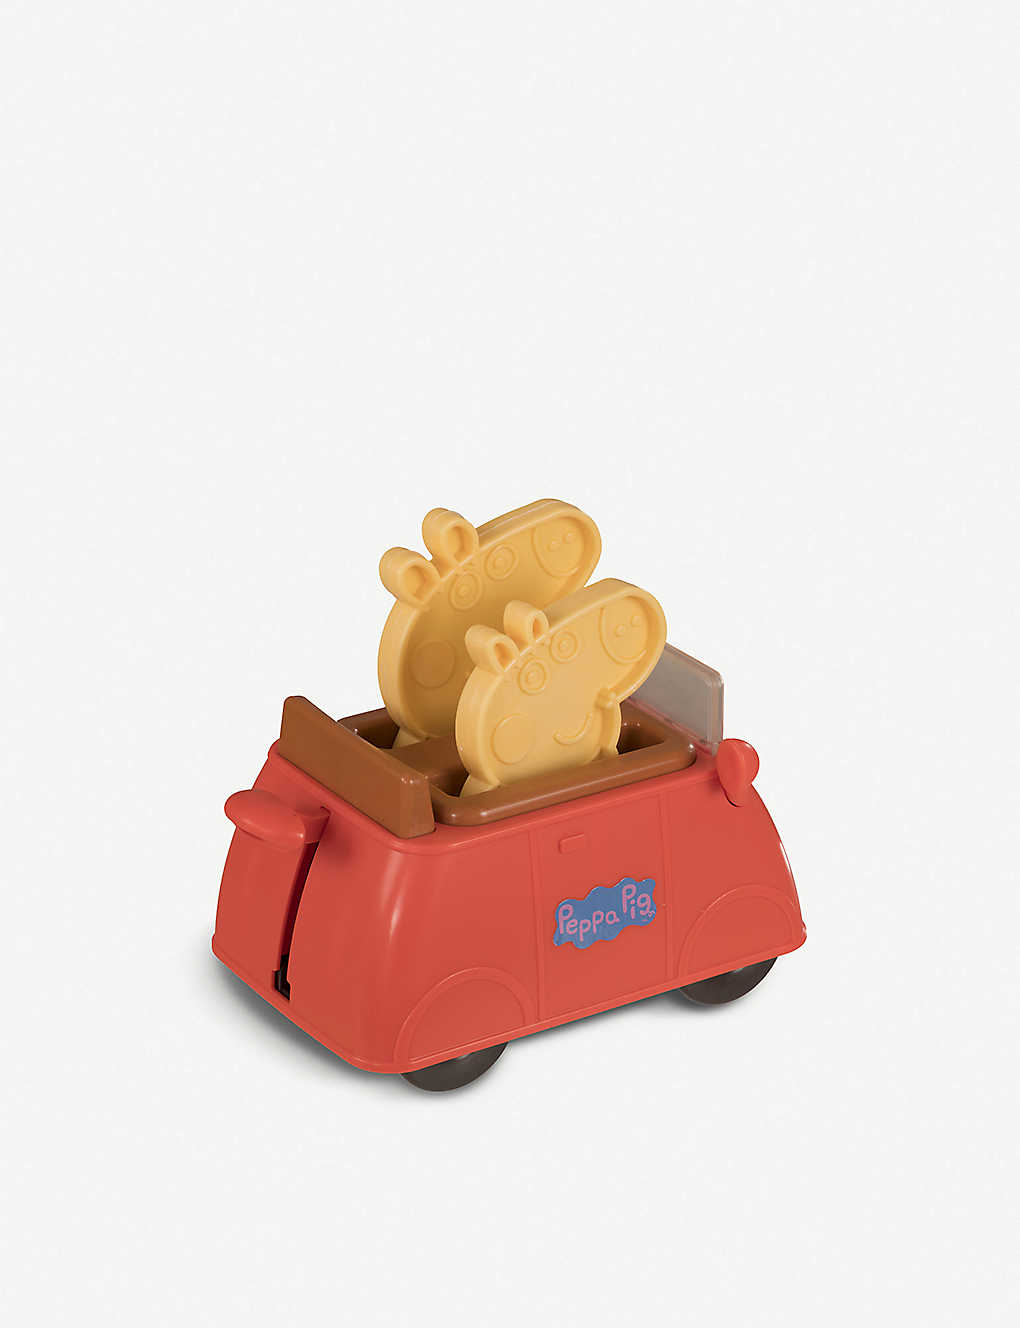 PEPPA PIG: Peppa Pig Car Toaster toy